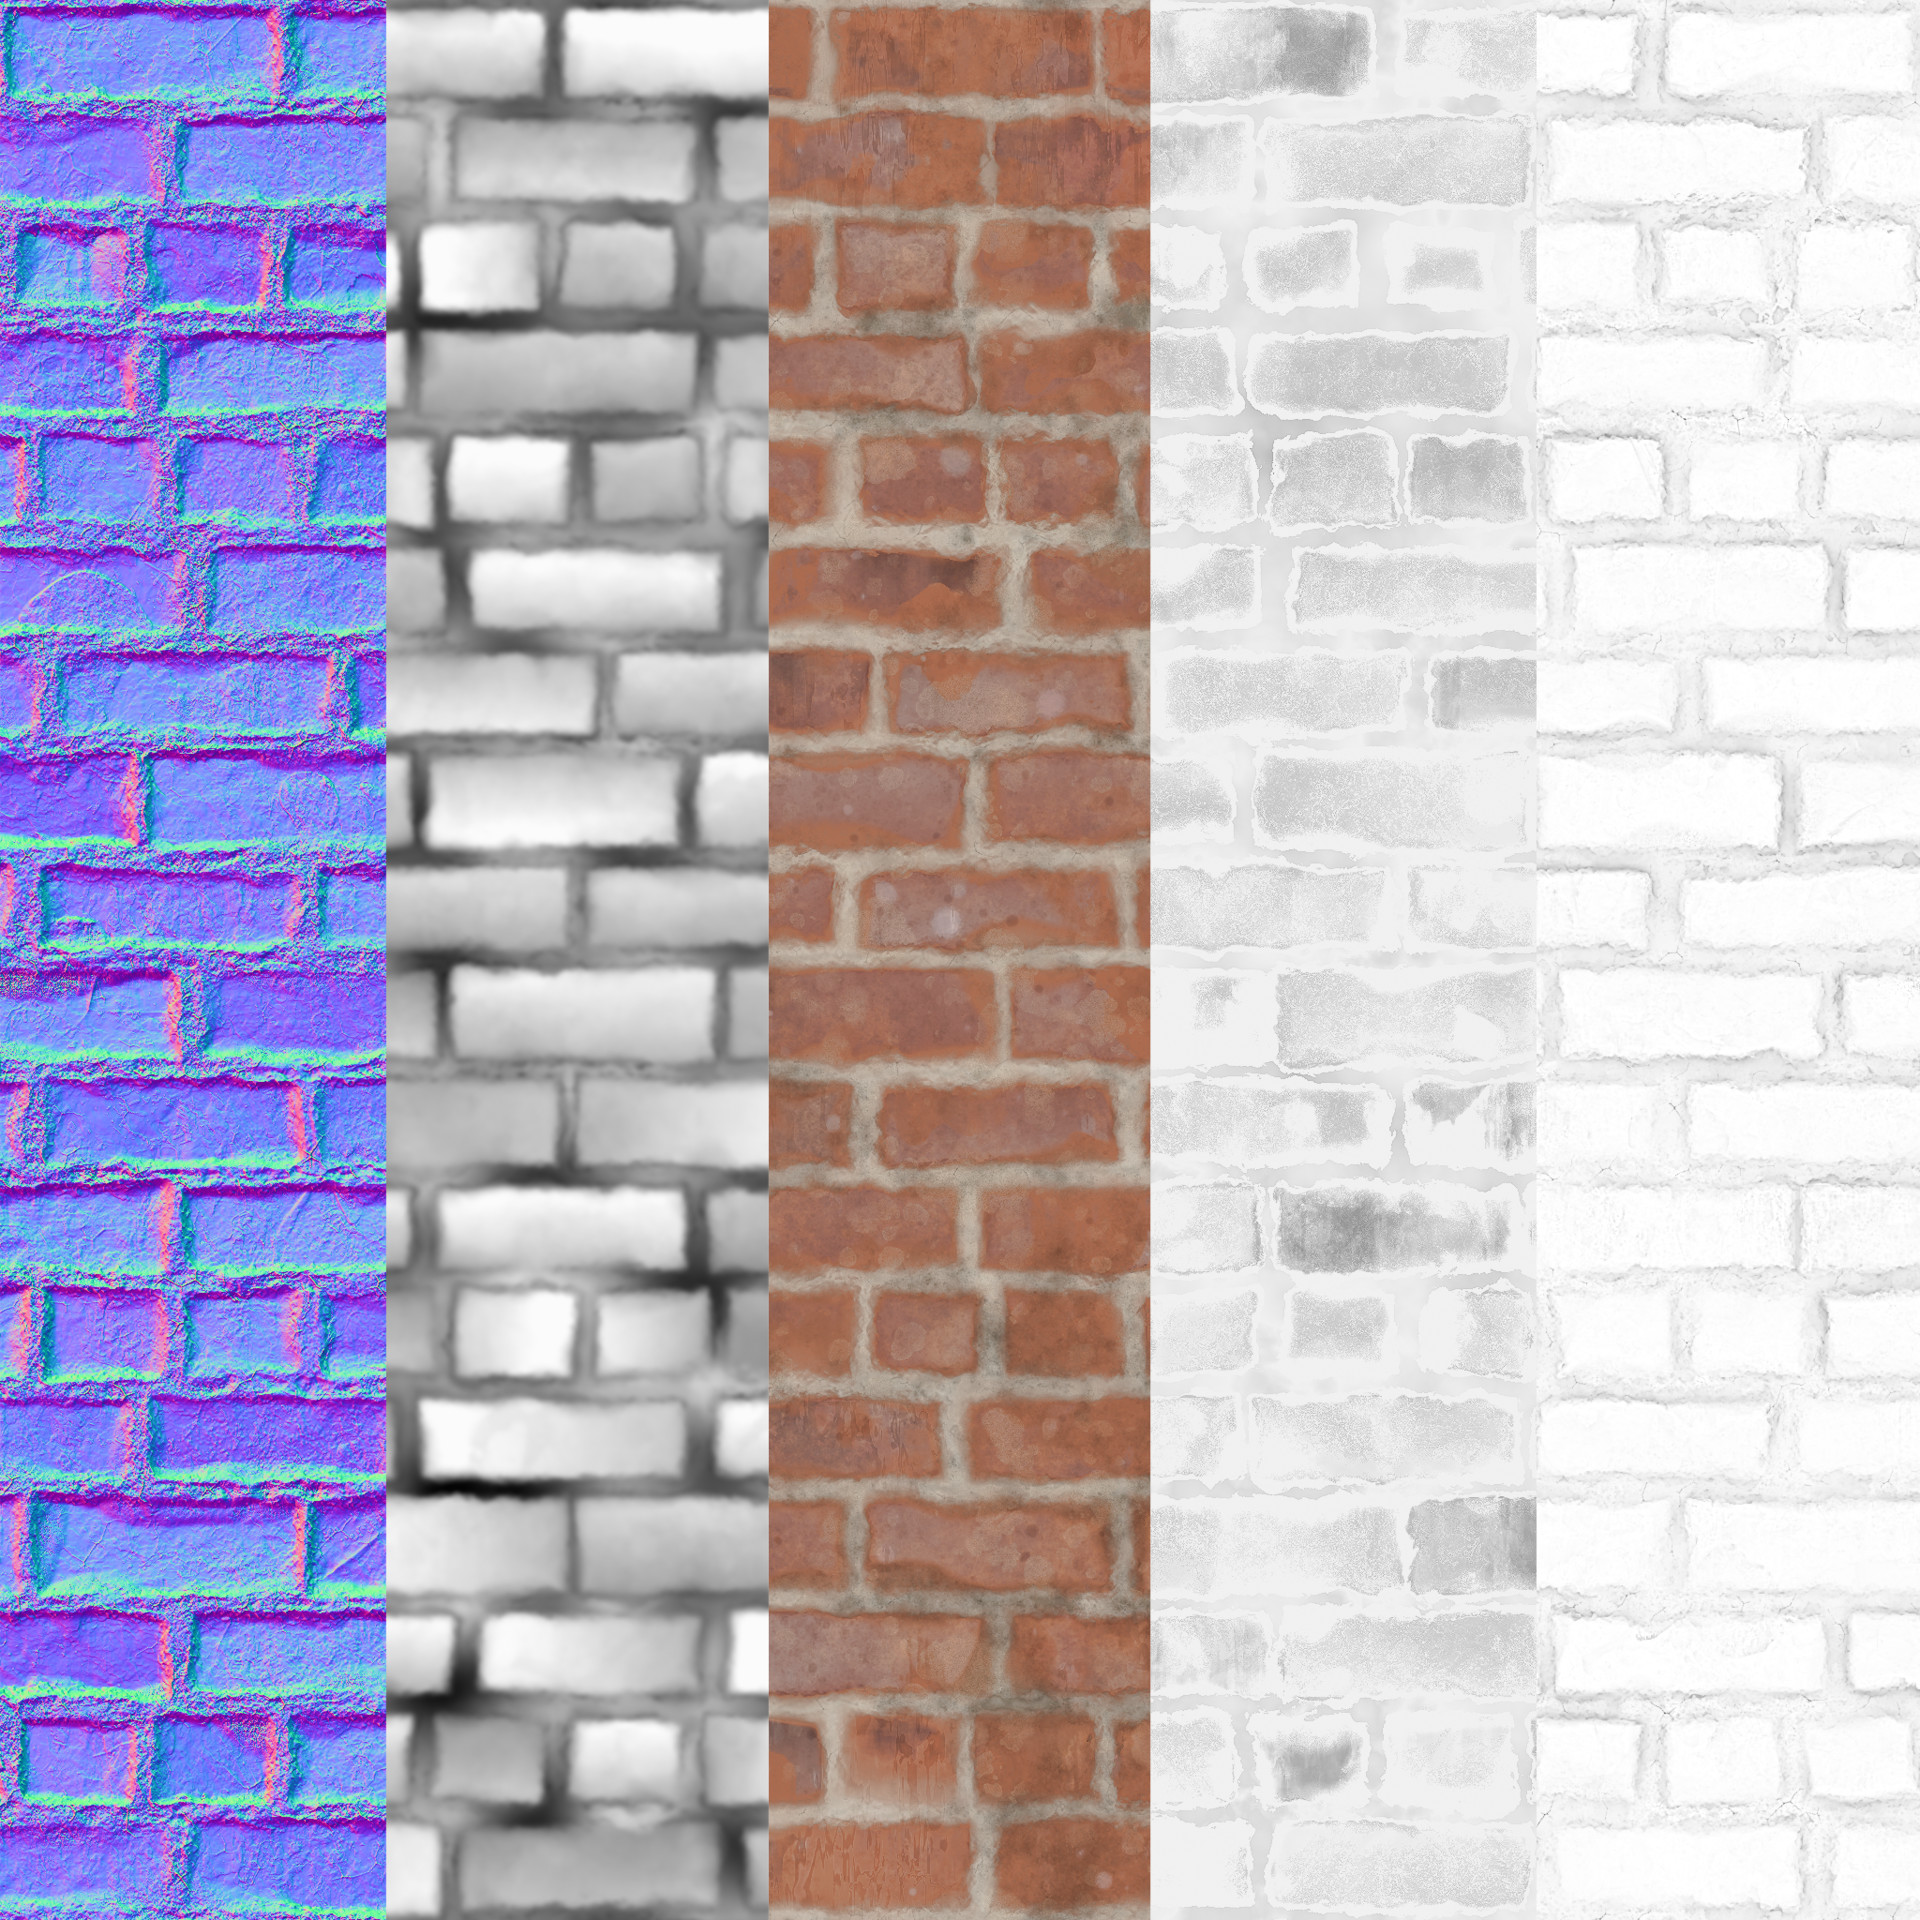 Alina godfrey bricks normal rough albedo textures